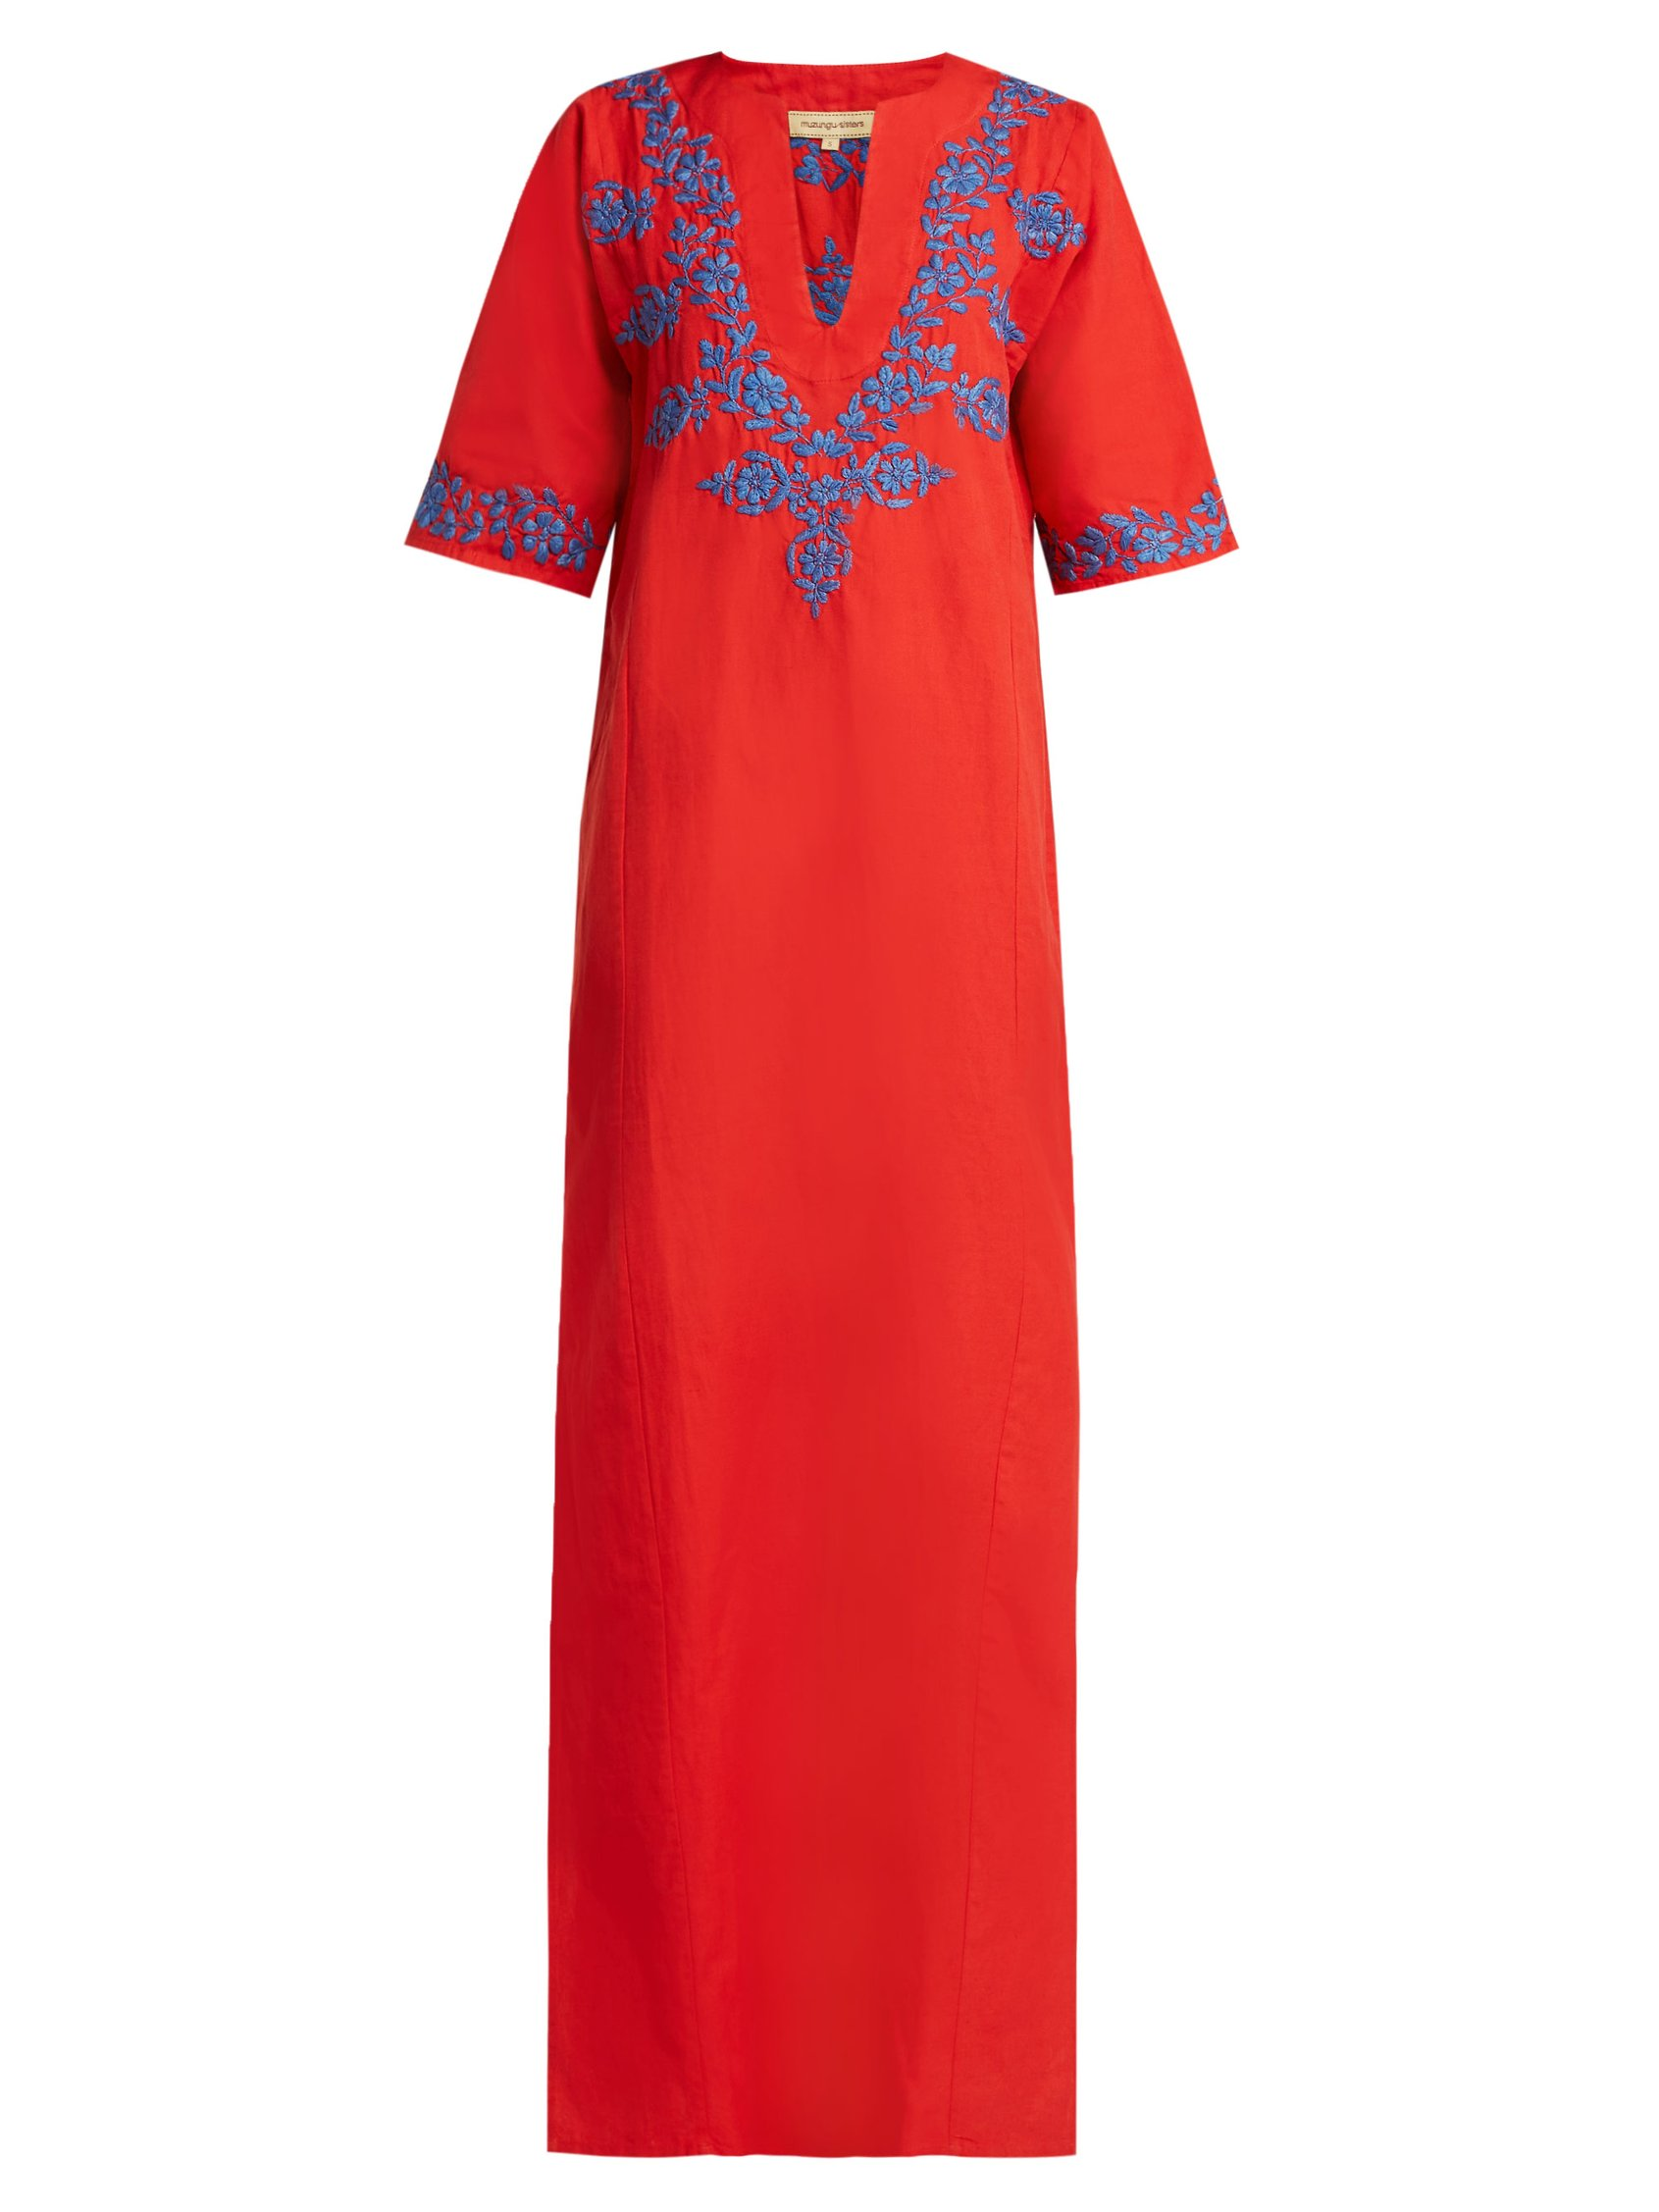 red resort wear, chinese new year, what to wear on retreat holiday wellness, red dress